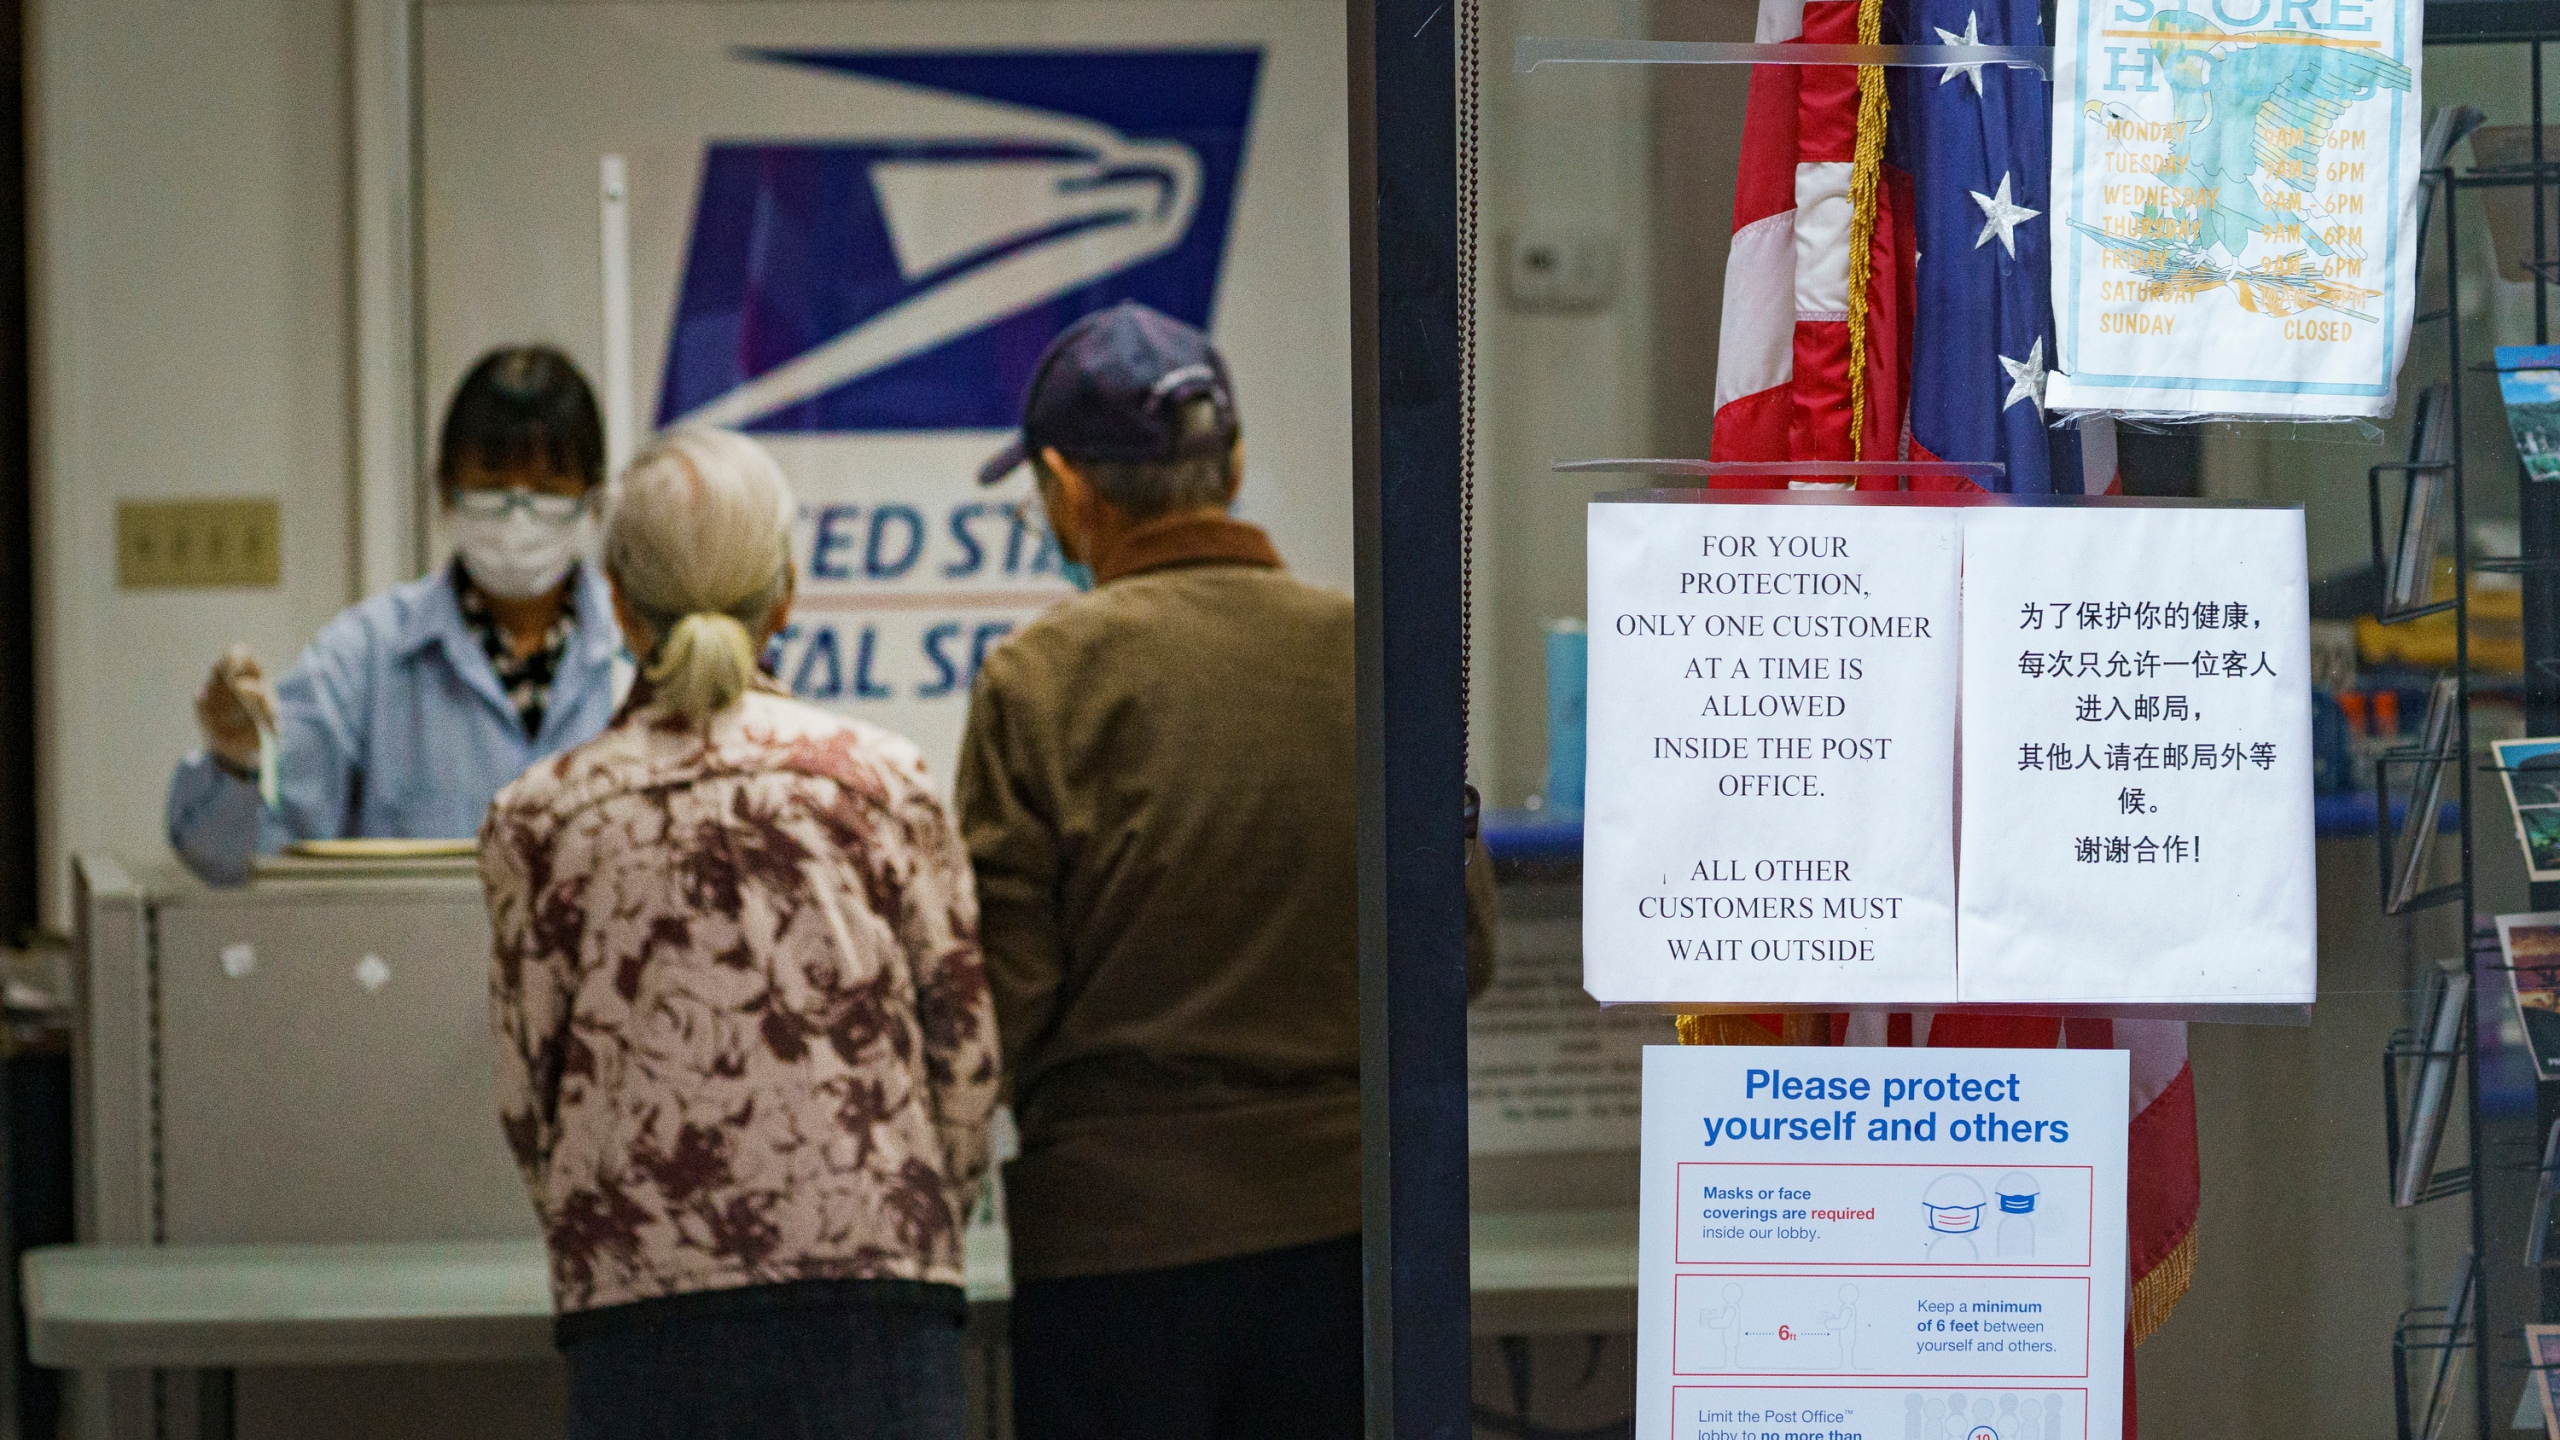 A sign posted at a U.S. post office advises that only one customer at a time is allowed inside, as a senior couple mails a parcel in the Chinatown district of Los Angeles Wednesday, Nov. 18, 2020, during the coronavirus pandemic. (AP Photo/Damian Dovarganes)